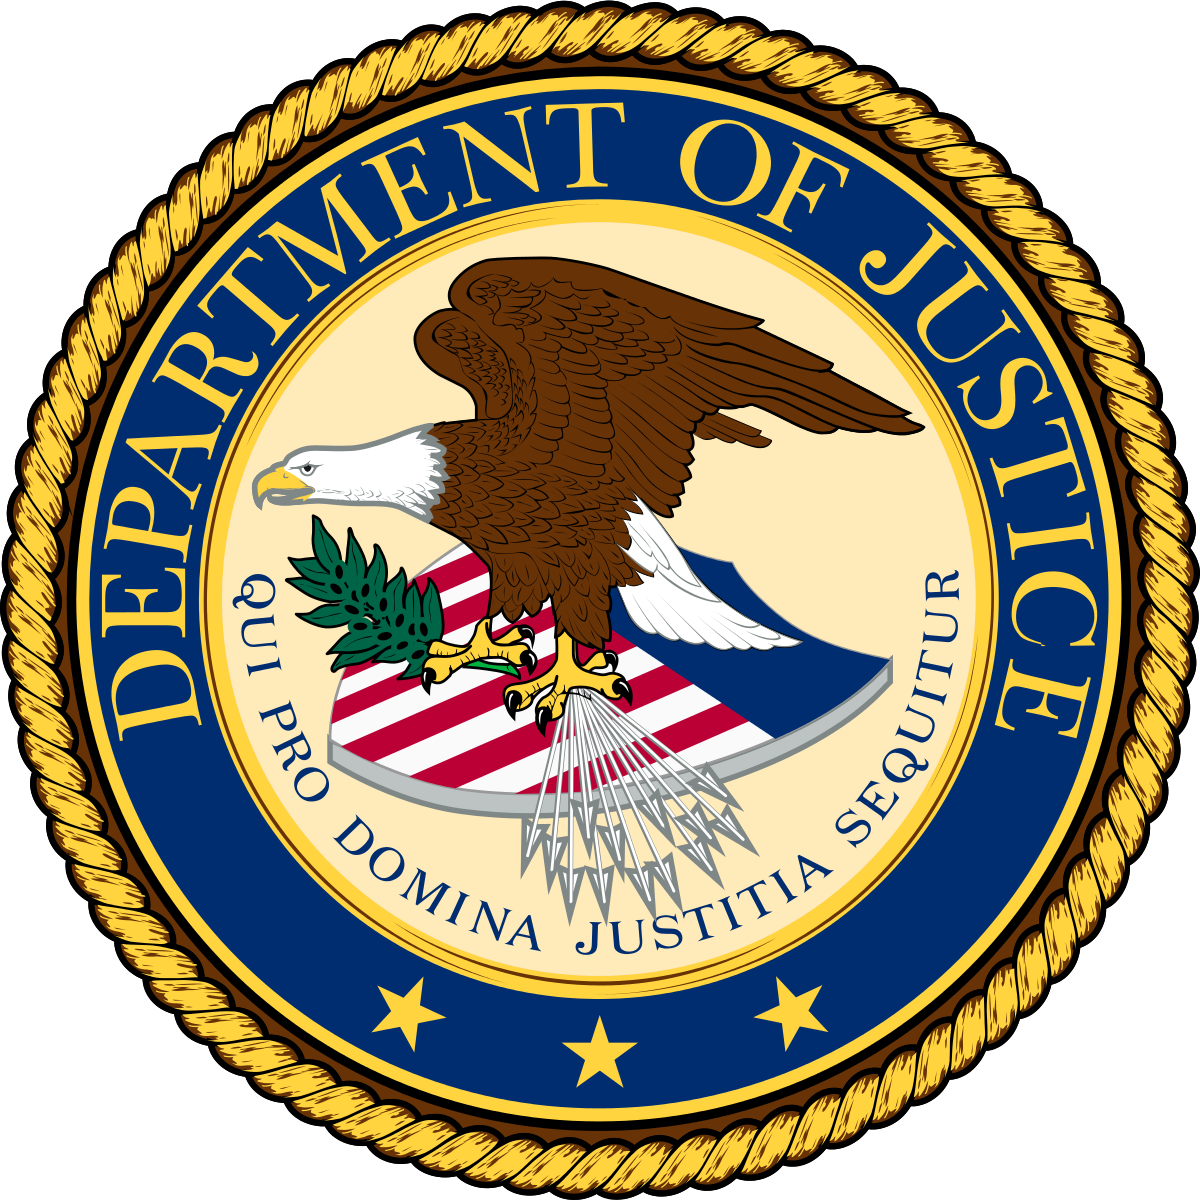 24-Year-Old Carroll County Man Pleads Guilty To Federal Charge For Possession Of Child Pornography